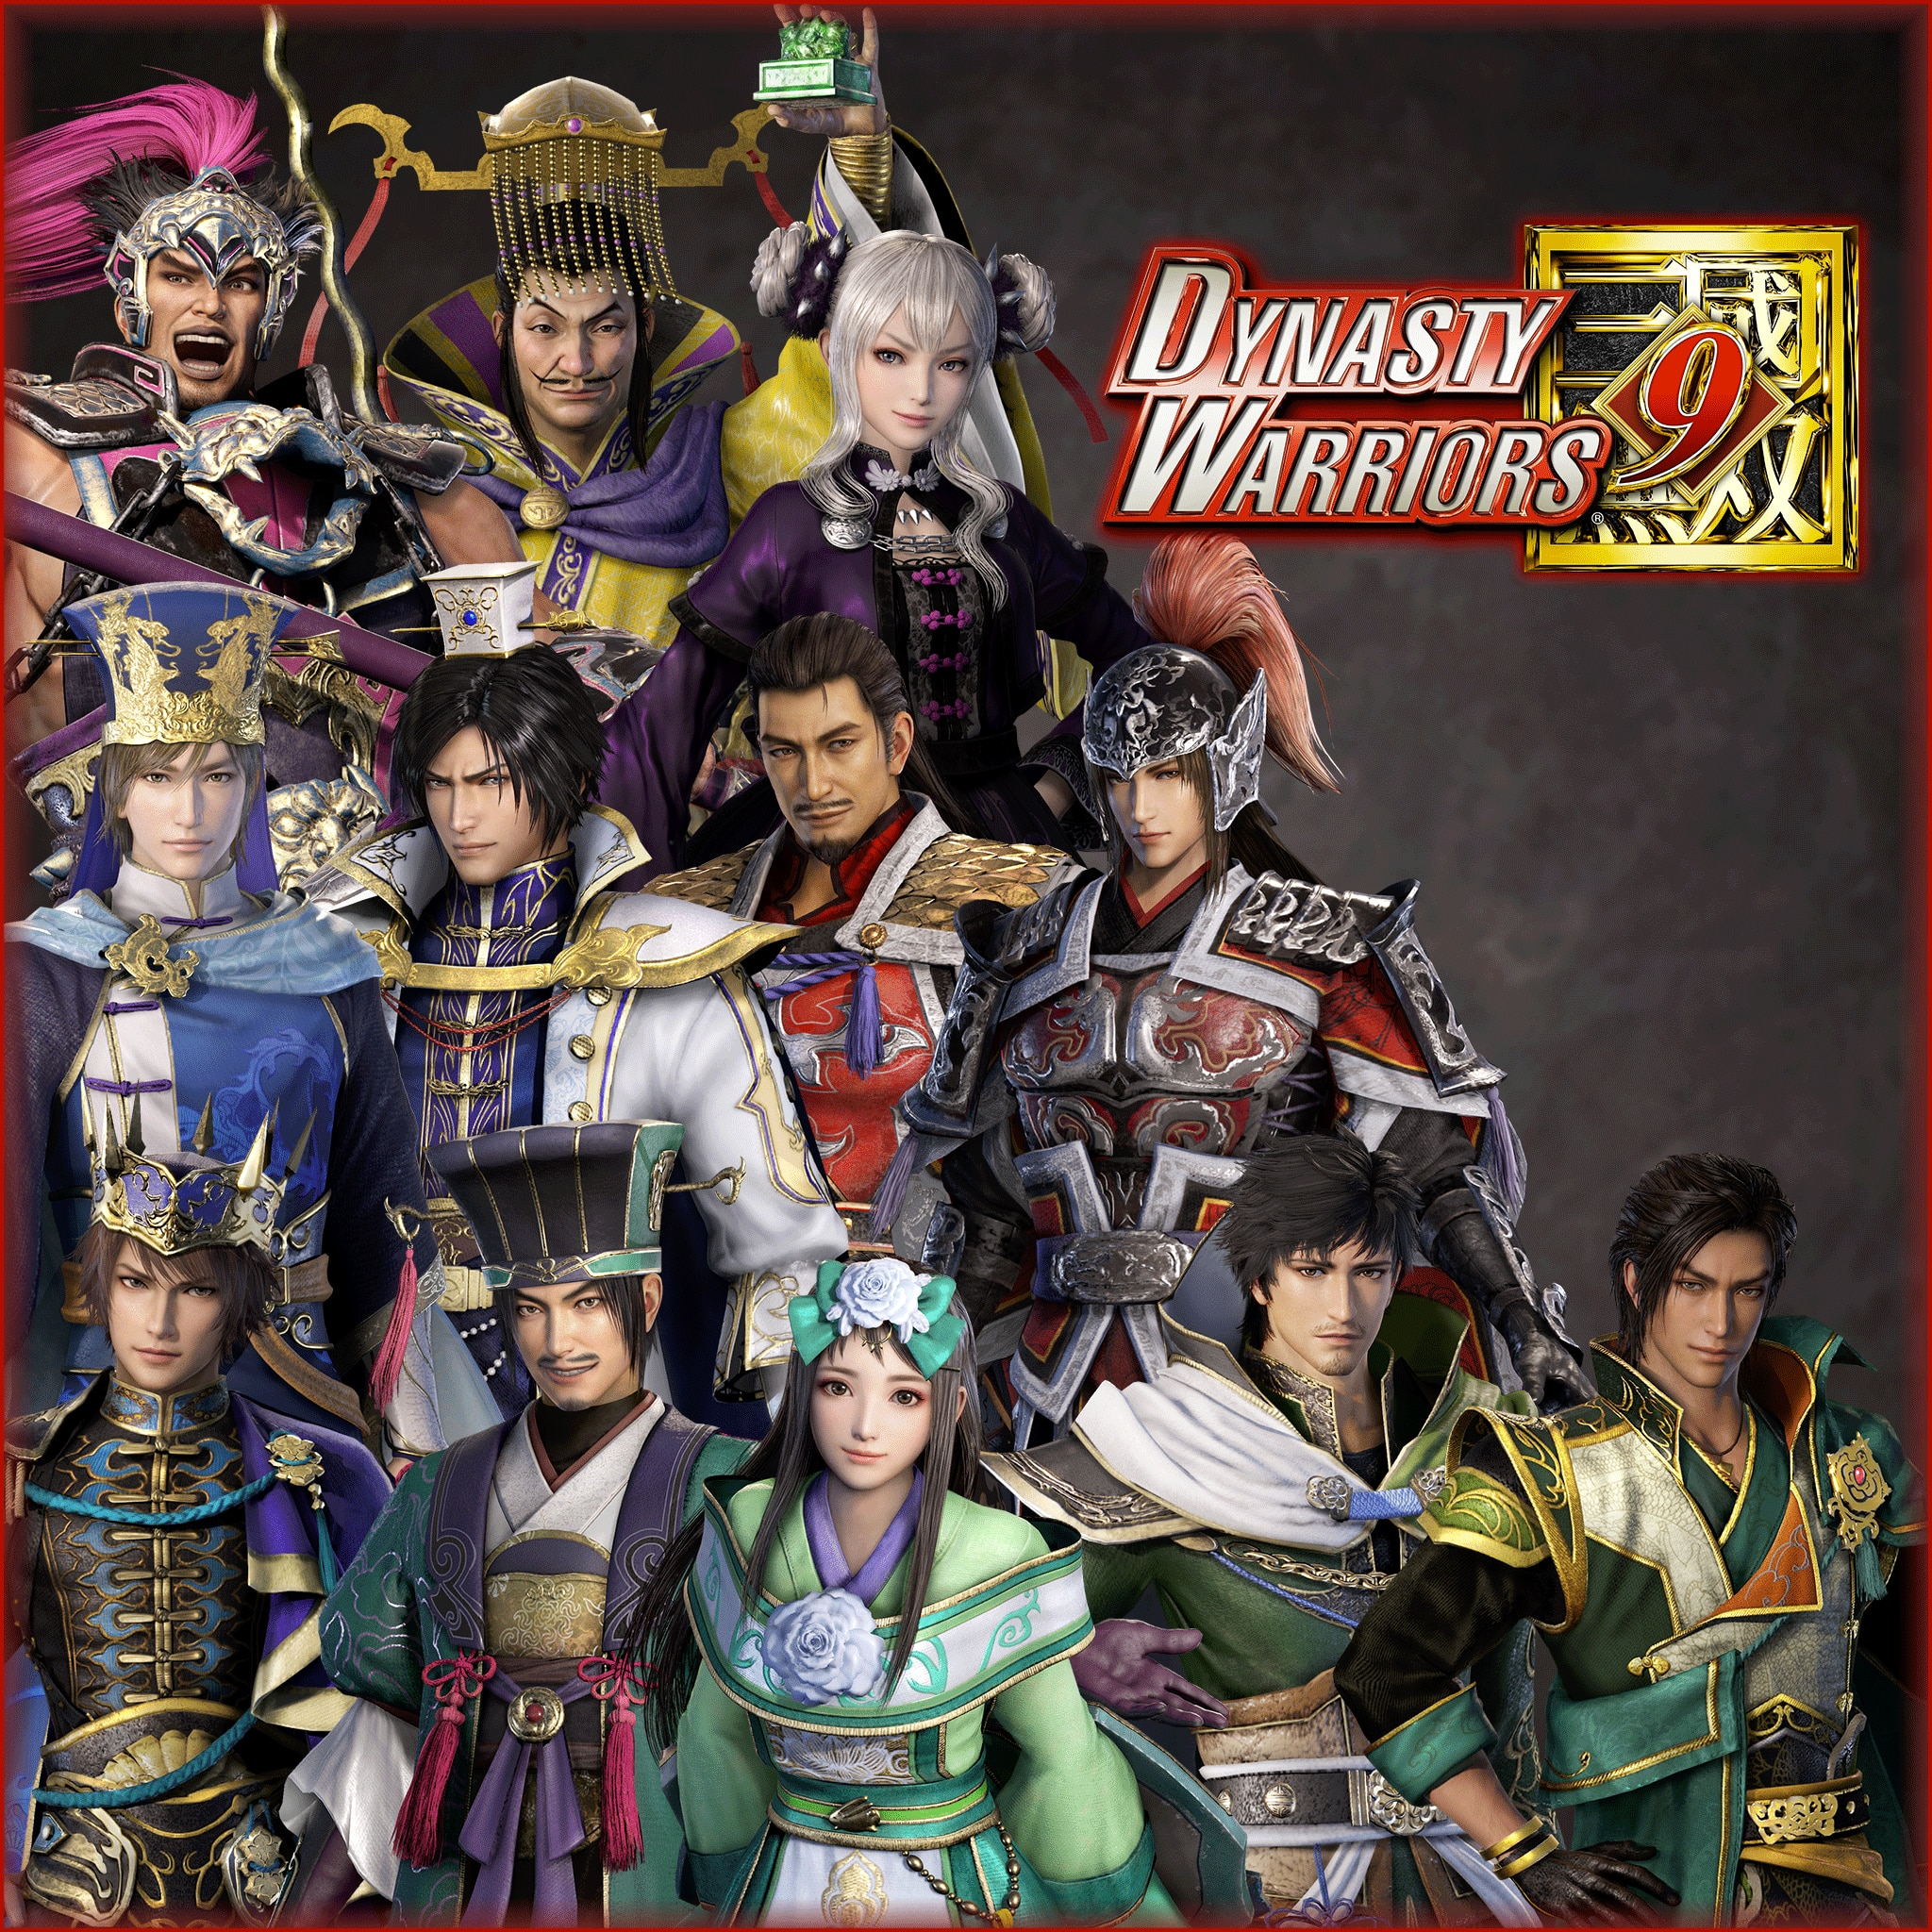 DYNASTY WARRIORS 9 Special Scenario Edition